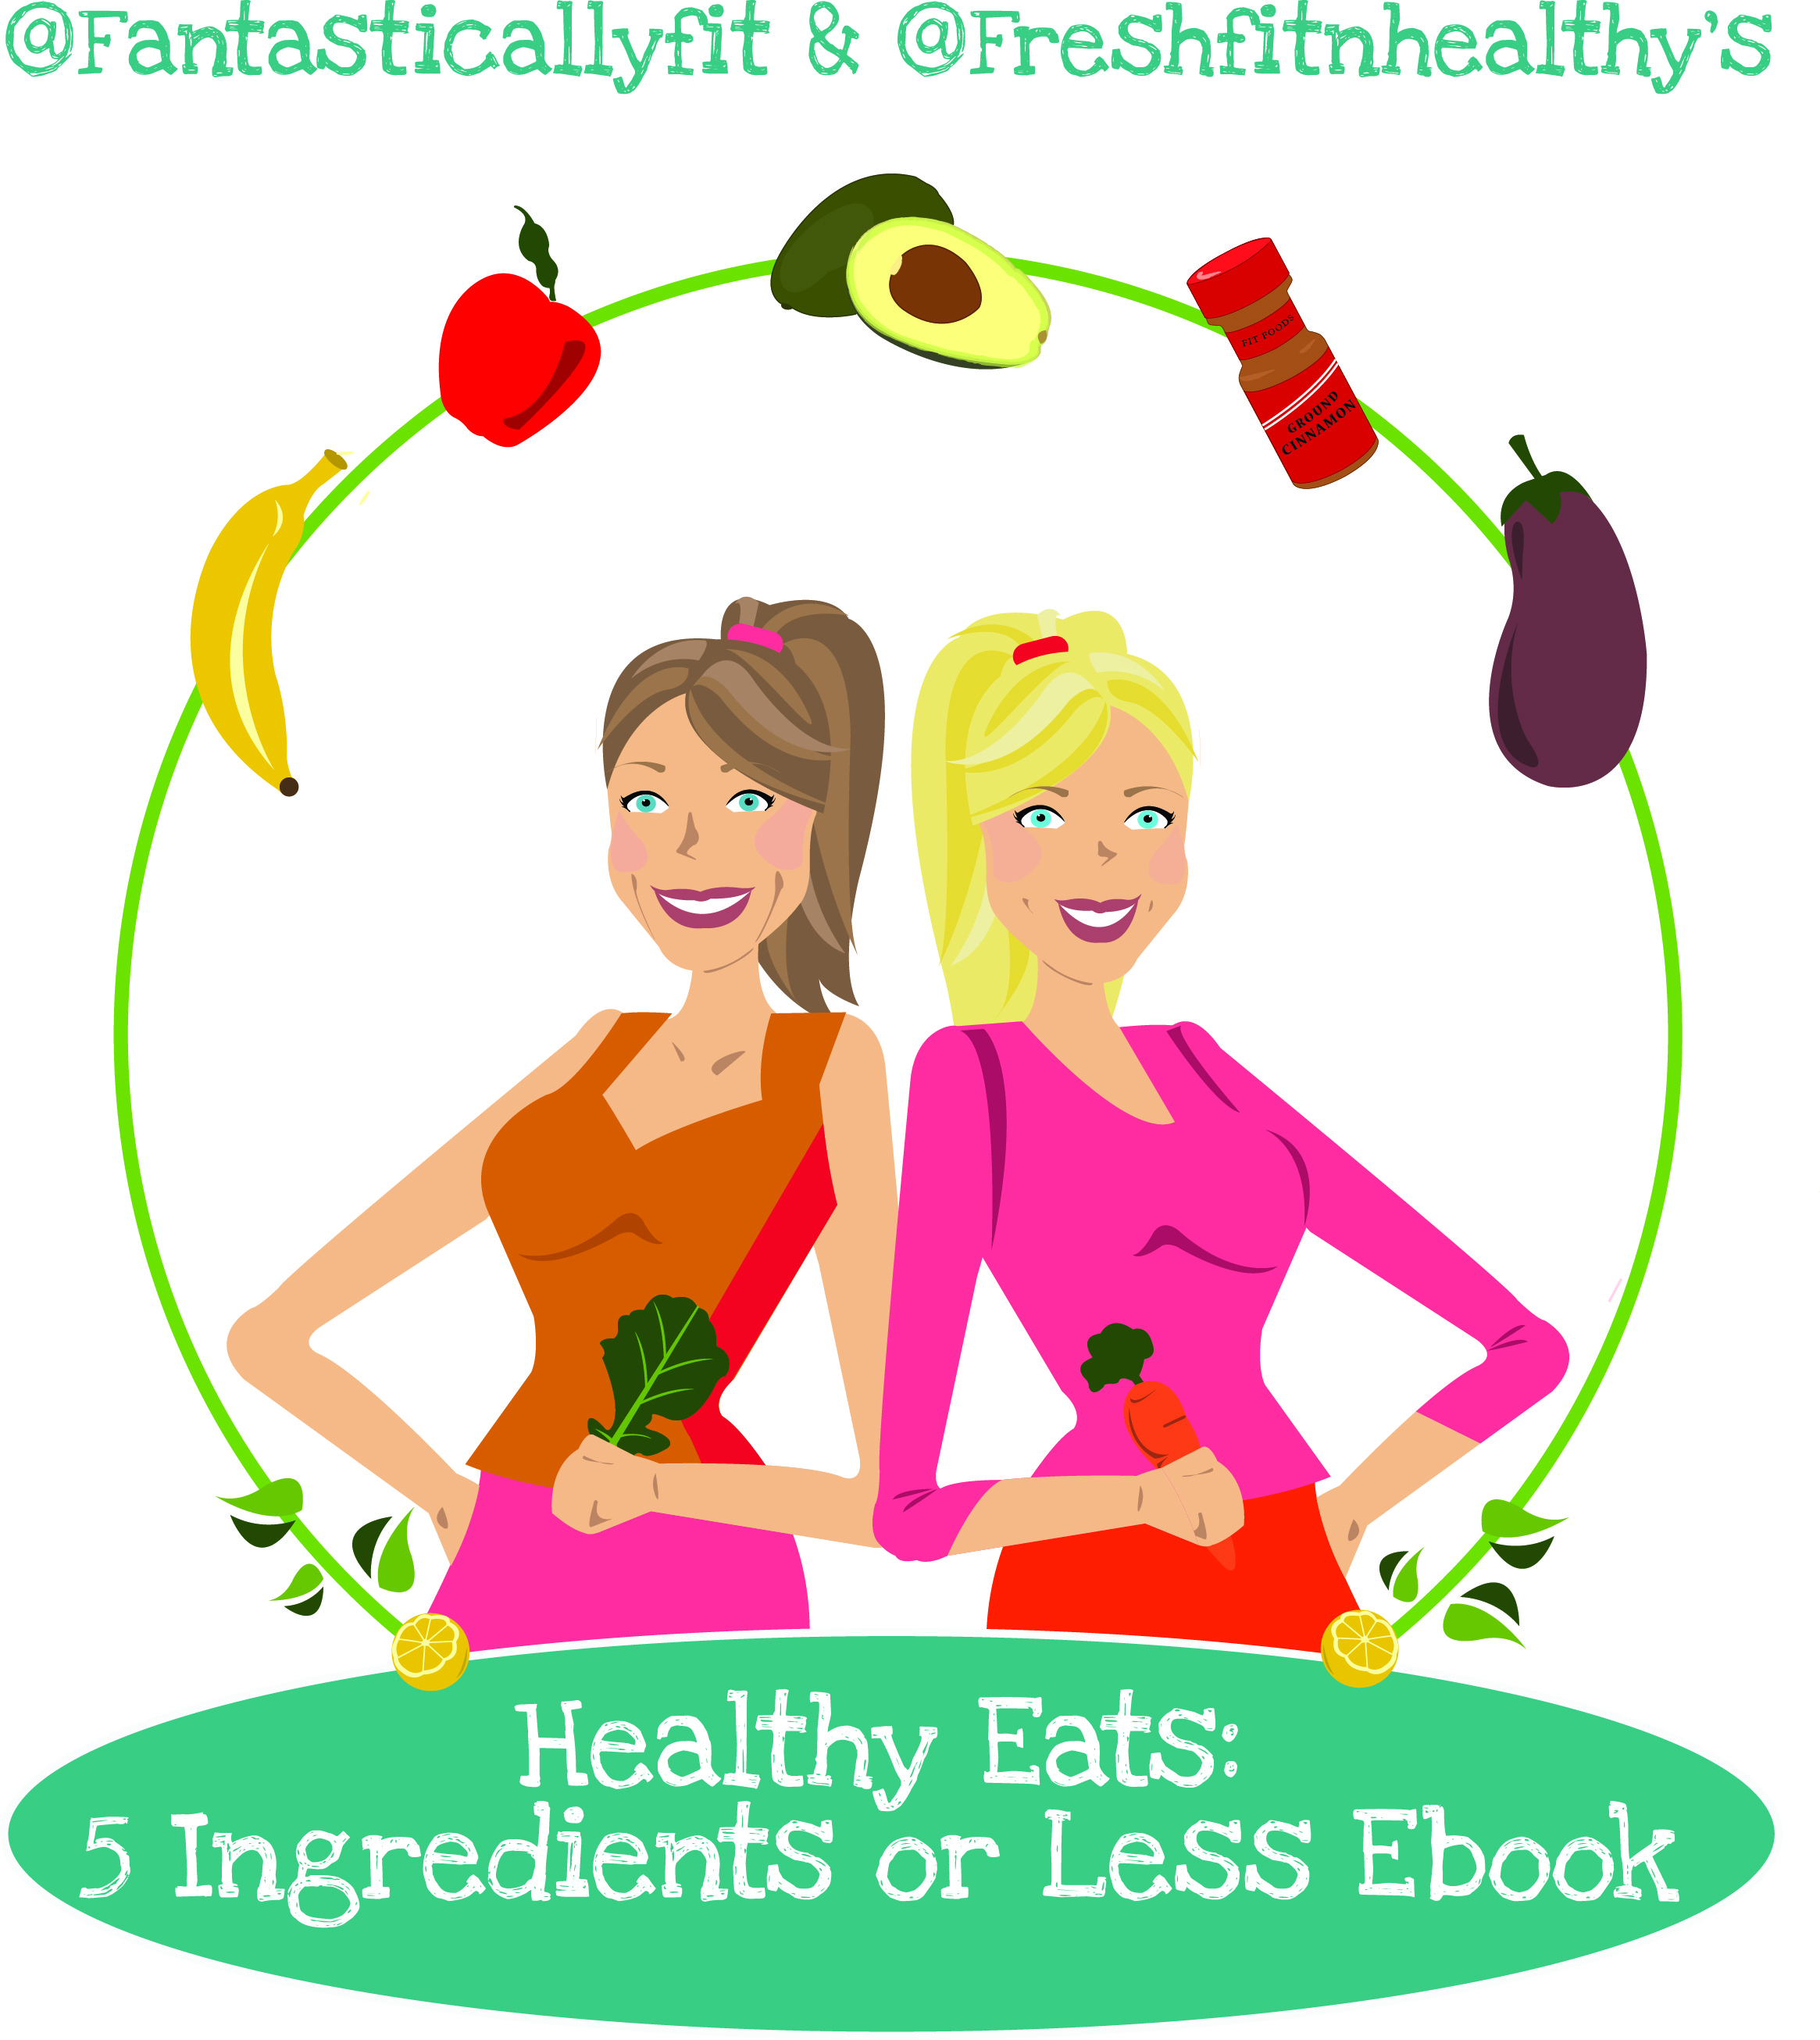 5 Ingredients or Less Ebook Release